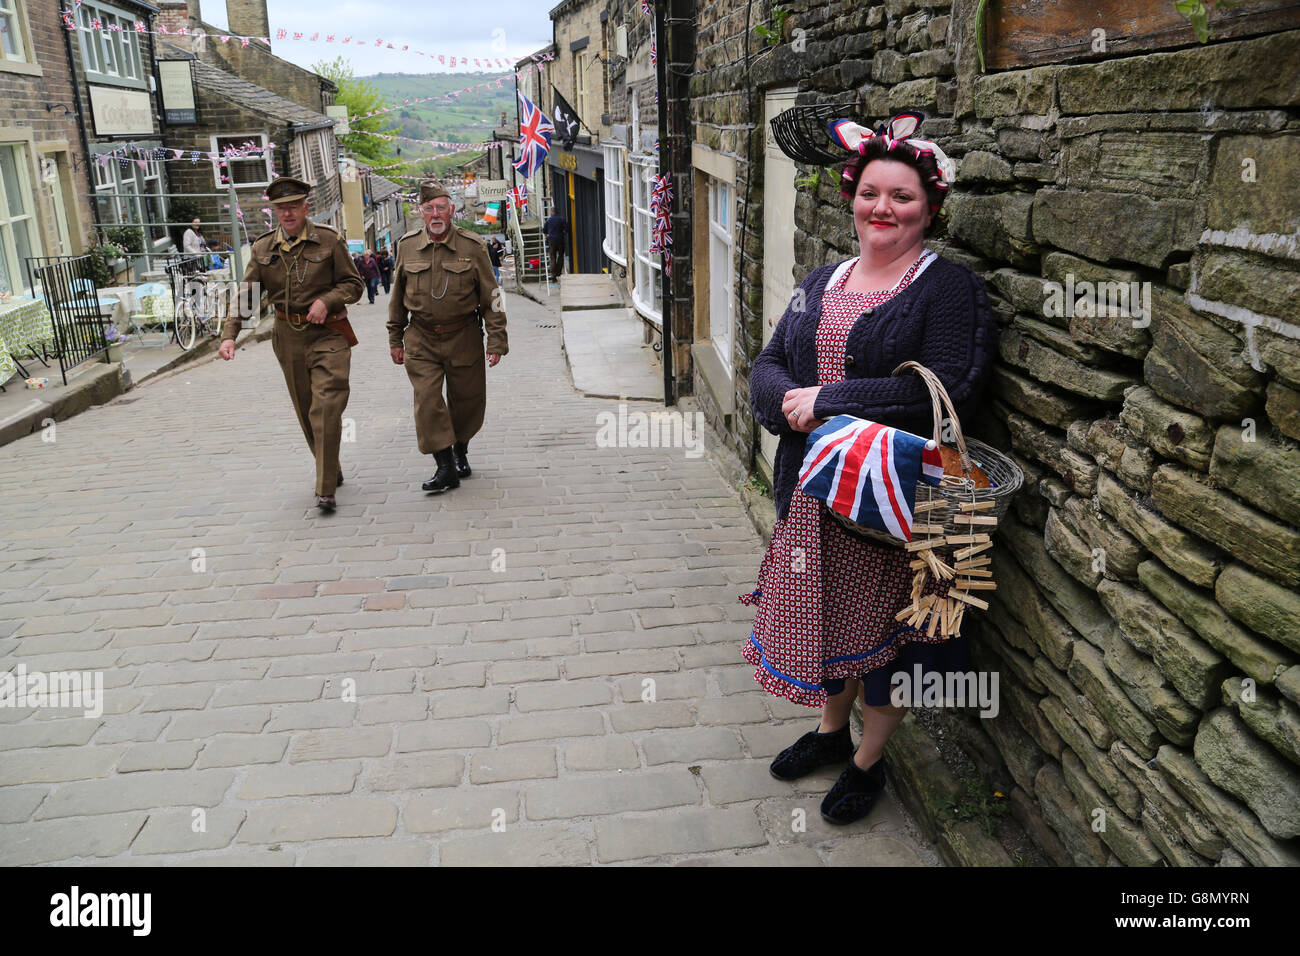 A woman dressed in costume smiles as two men dressed in home guard uniforms walk past during the annual 1940's event Stock Photo